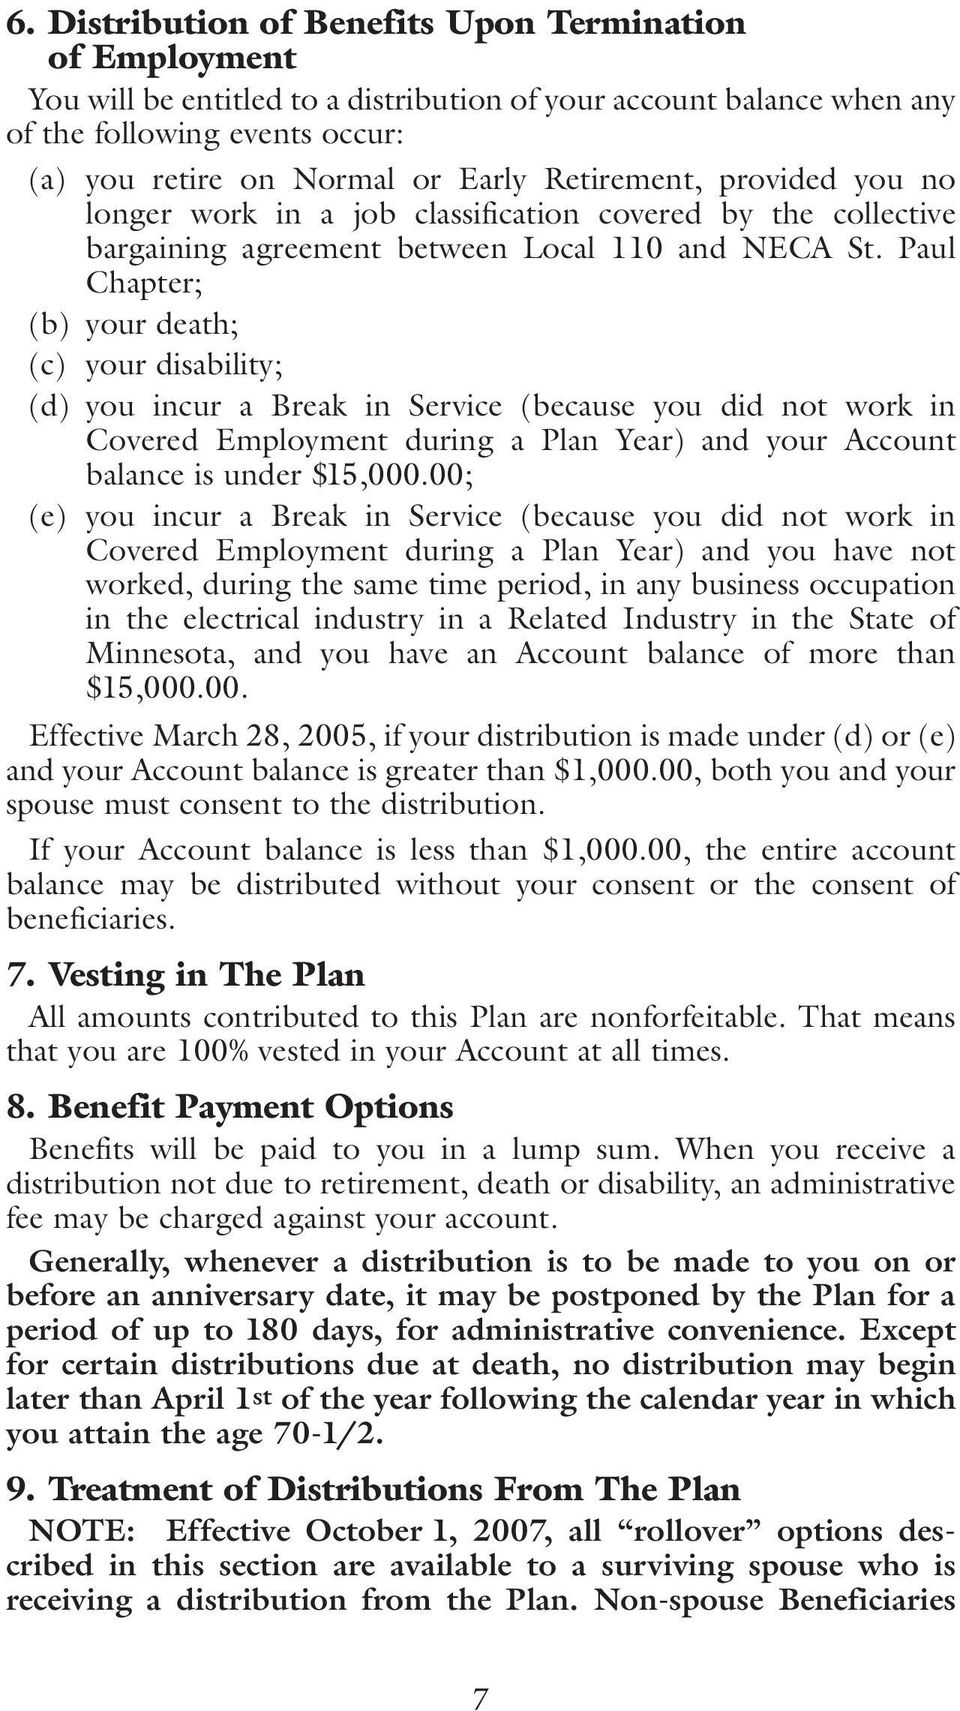 Paul Chapter; (b) your death; (c) your disability; (d) you incur a Break in Service (because you did not work in Covered Employment during a Plan Year) and your Account balance is under $15,000.